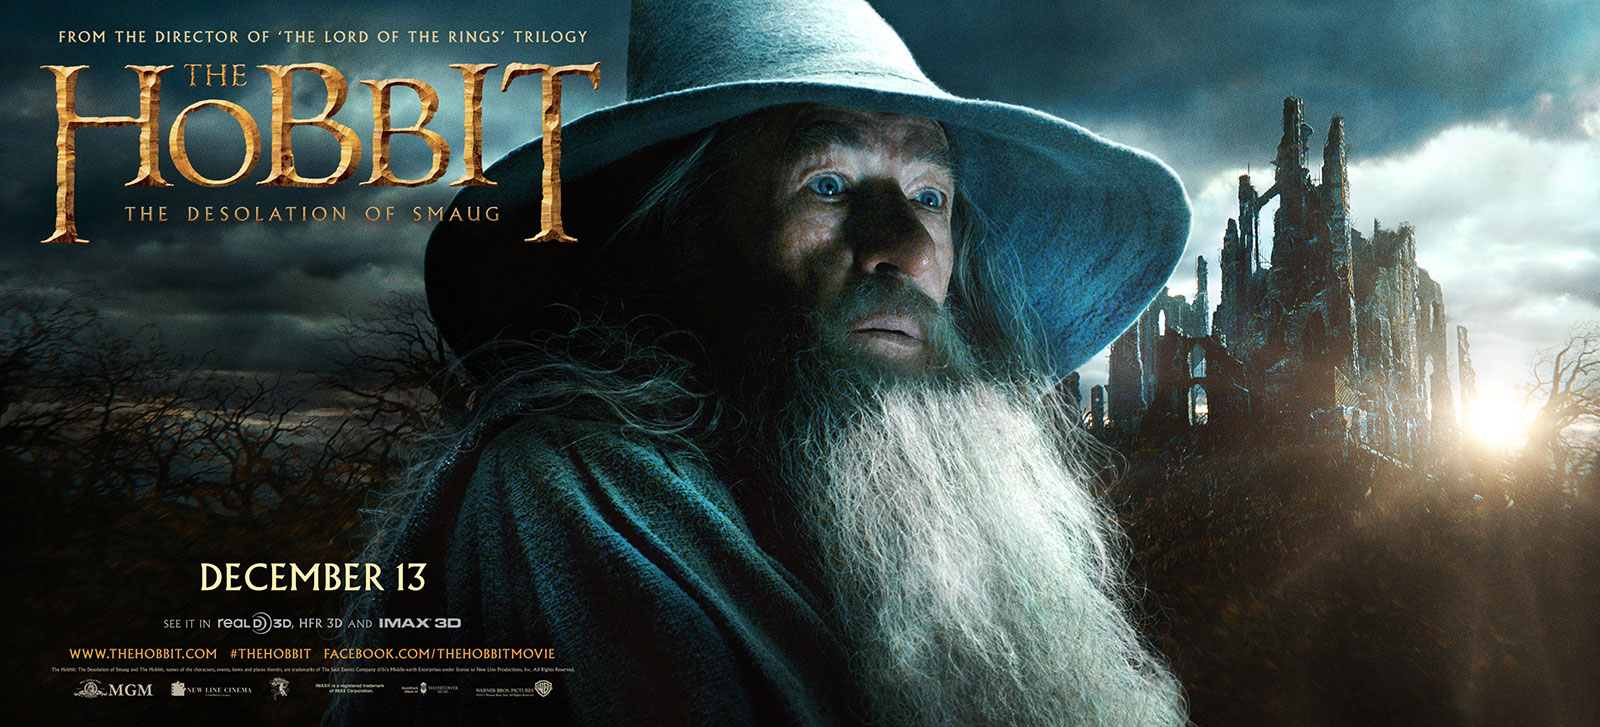 Billboard for THE HOBBIT: THE DESOLATION OF SMAUG featuring Ian McKellen as Gandalf